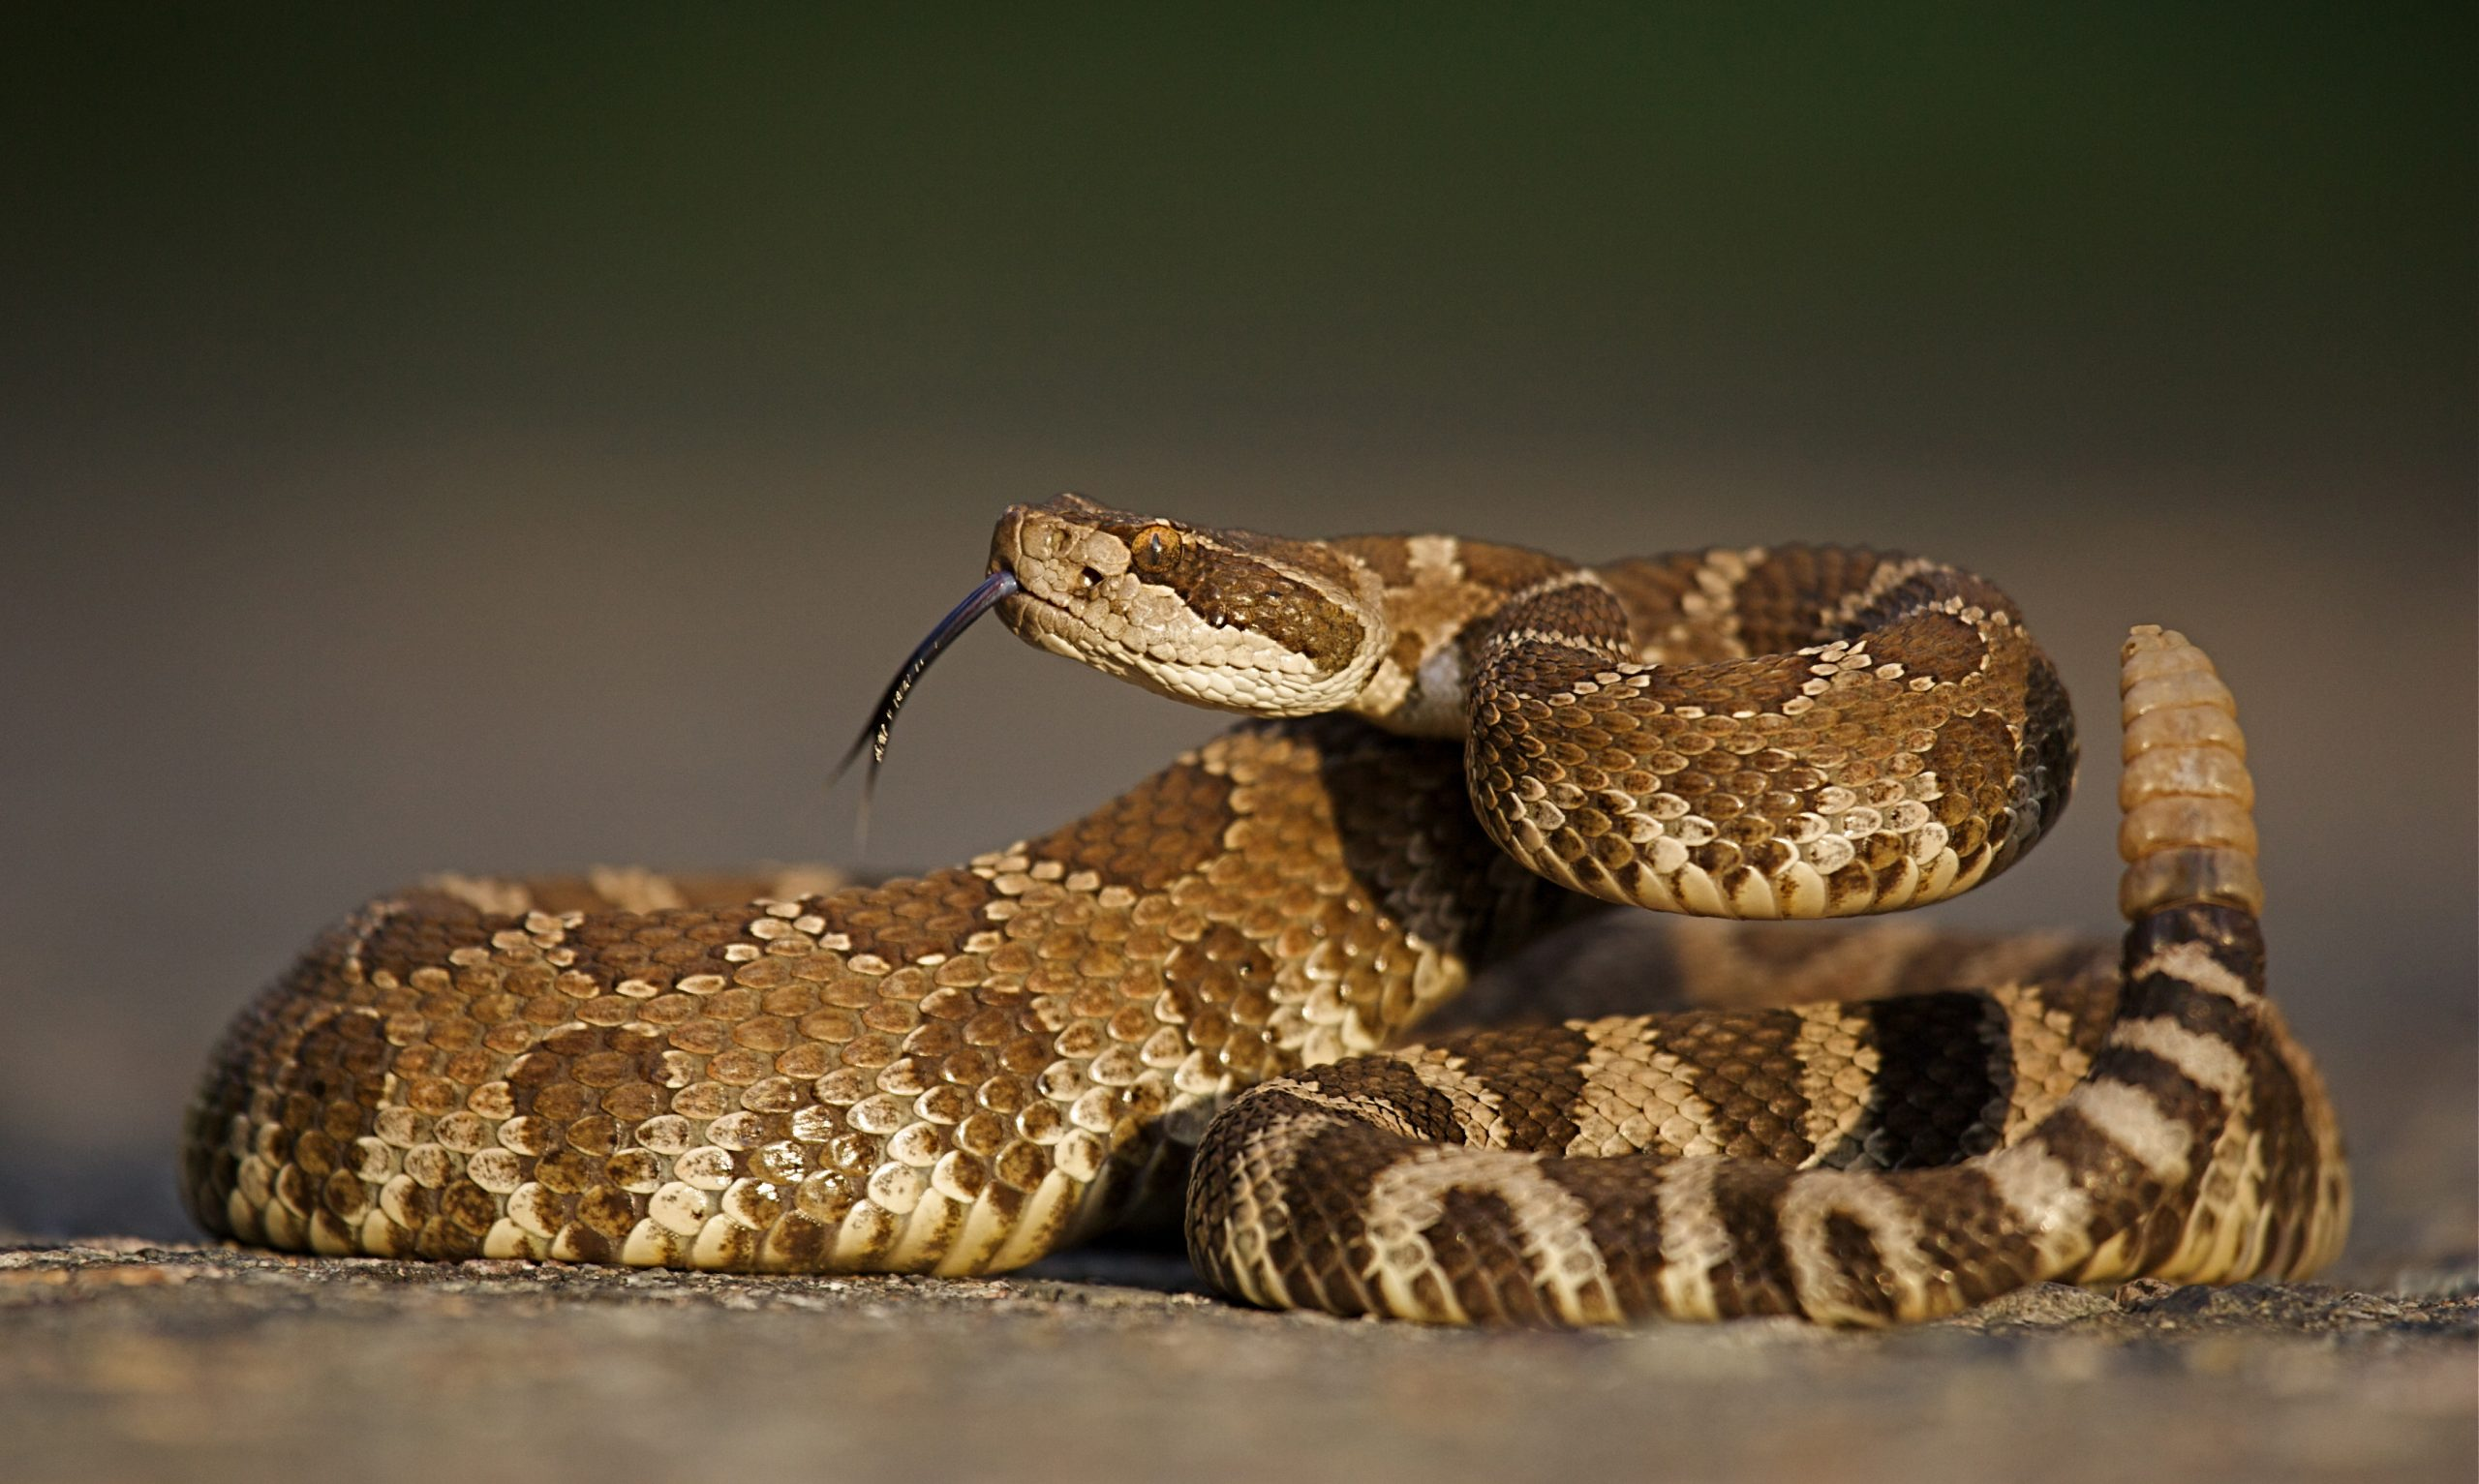 Rattlesnake numbers appear to be declining in the interior